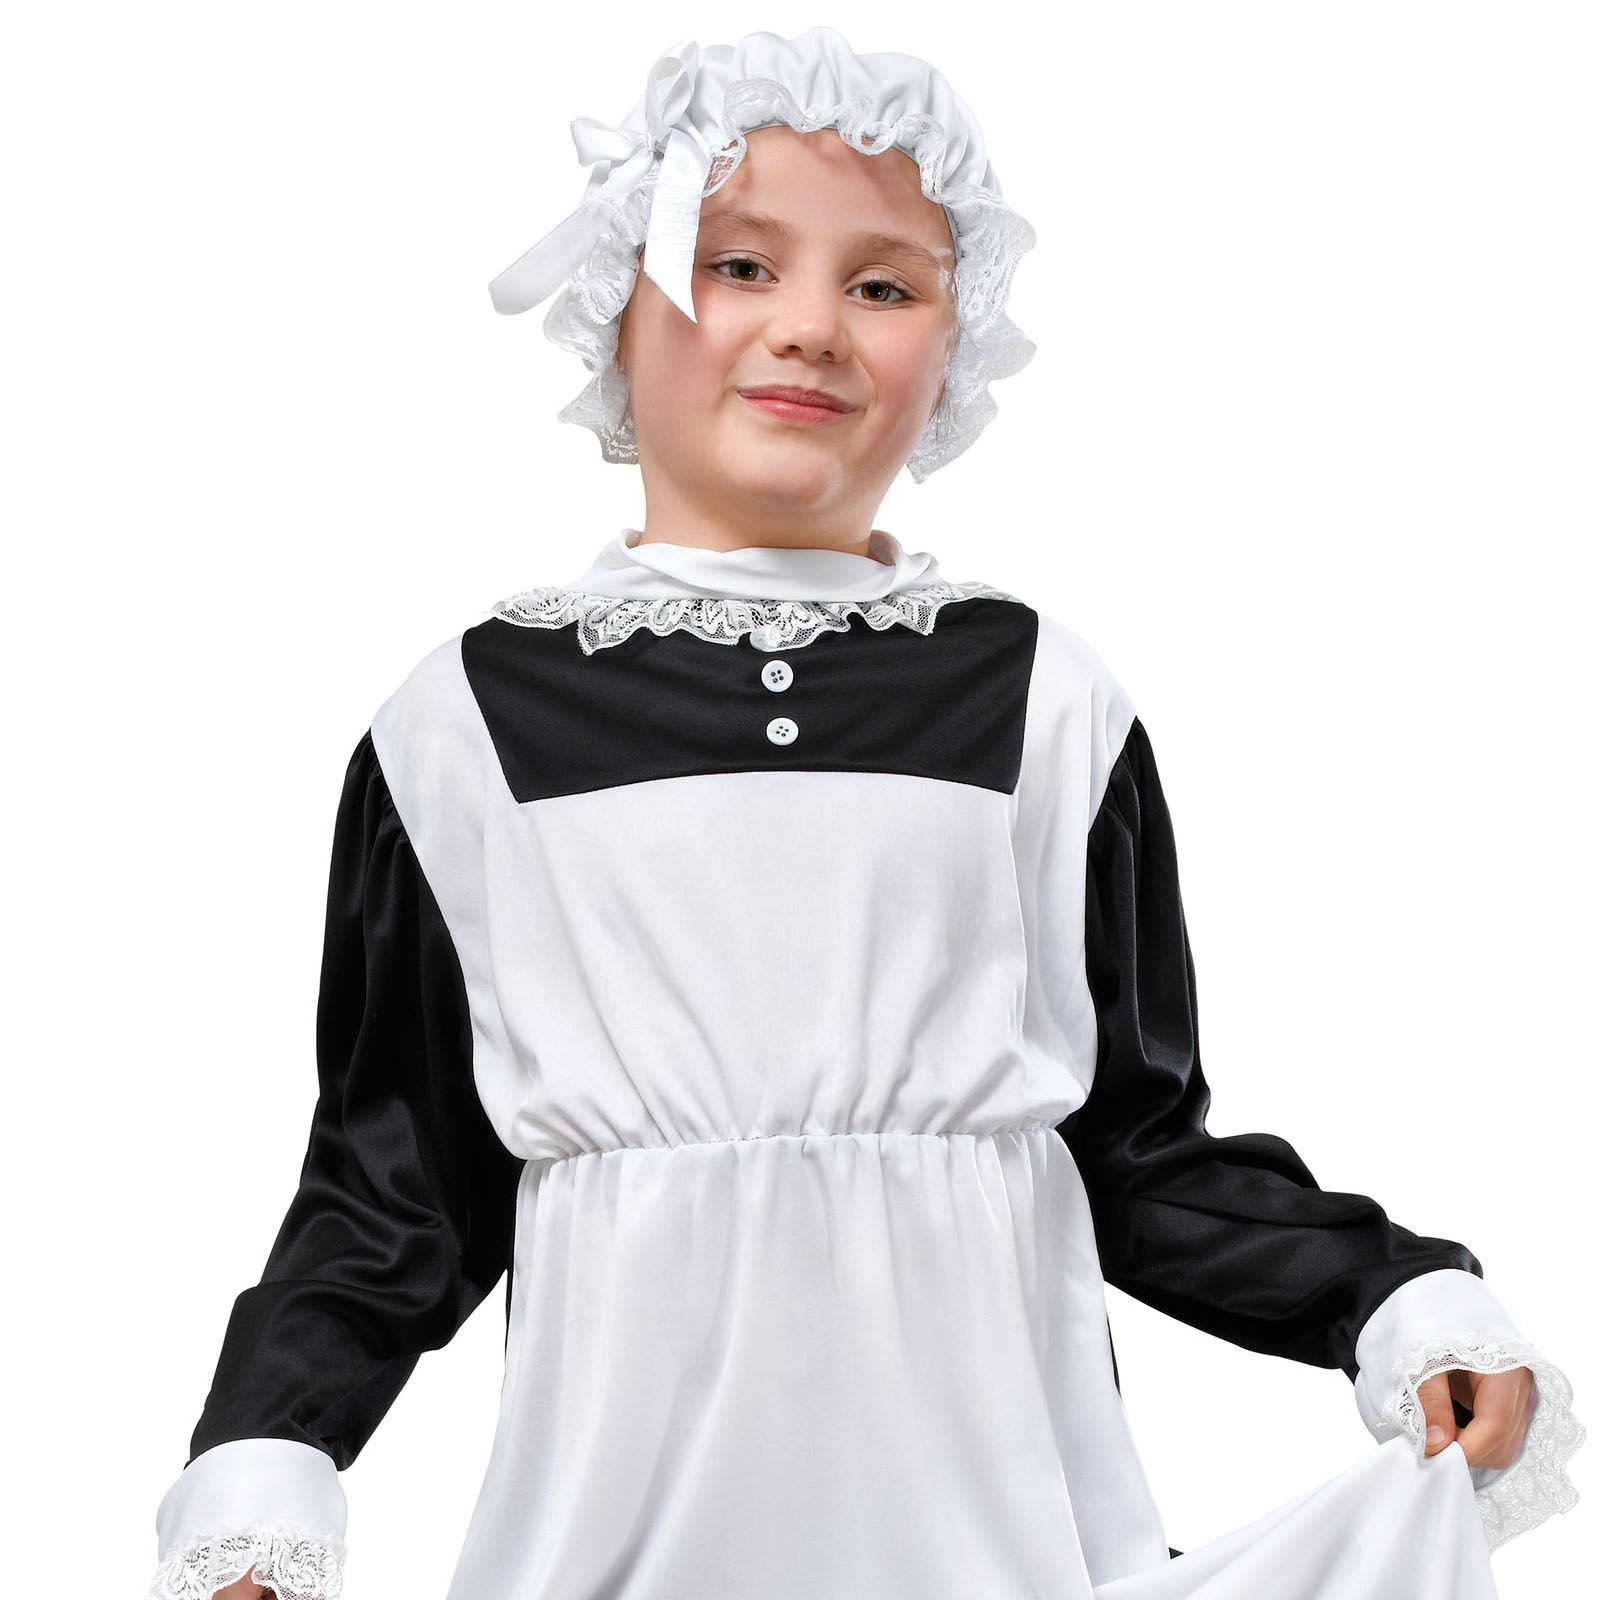 Childs Victorian Maid Fancy Dress Book Week Costume Historic Servant Old Fashion